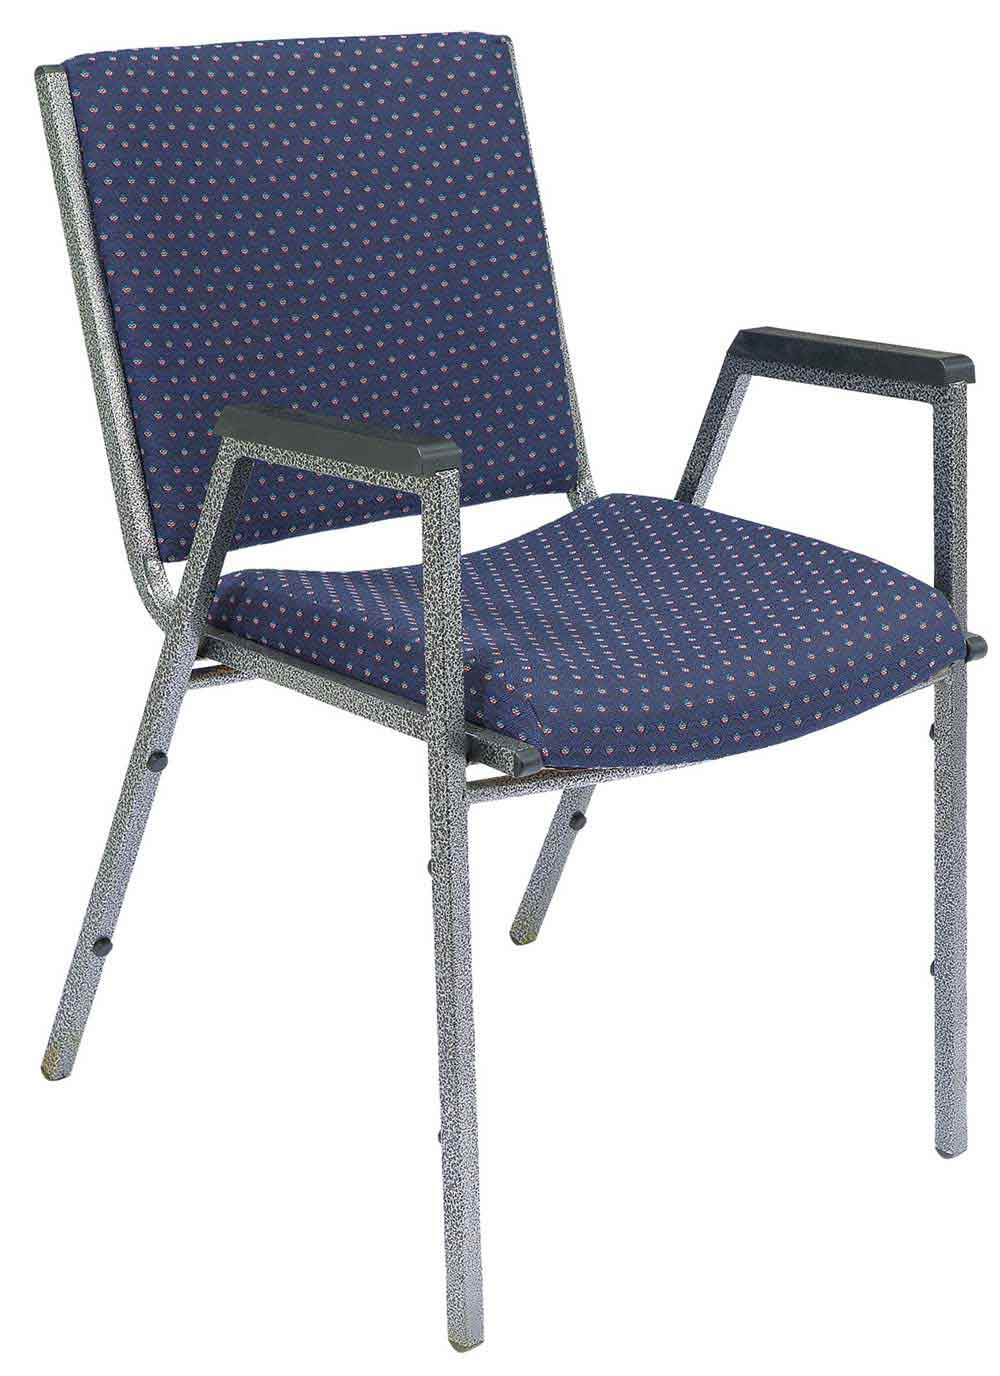 Plastic stacking chair with padded fabric and arm